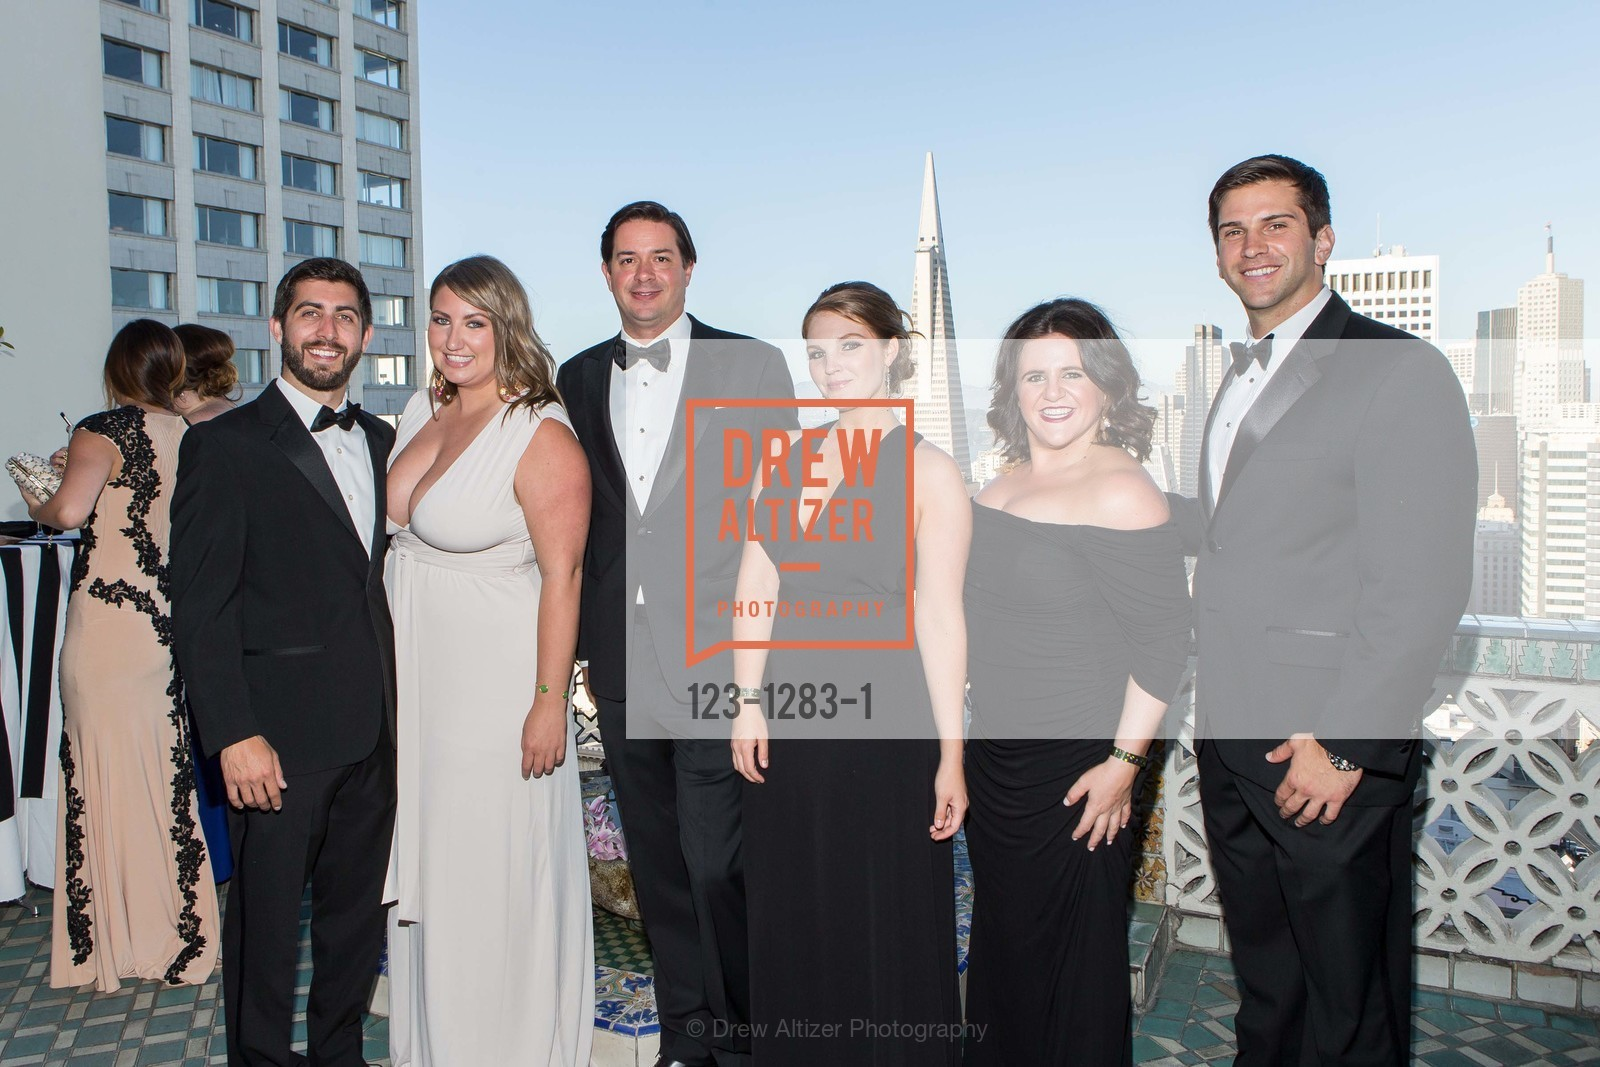 Josh Samaha, Annie Benish, Daniel Cassell, Jamie Taylor, Kate Heffernan, Peter Yorck, Spinsters of San Francisco Annual Ball 2016, US, June 25th, 2016